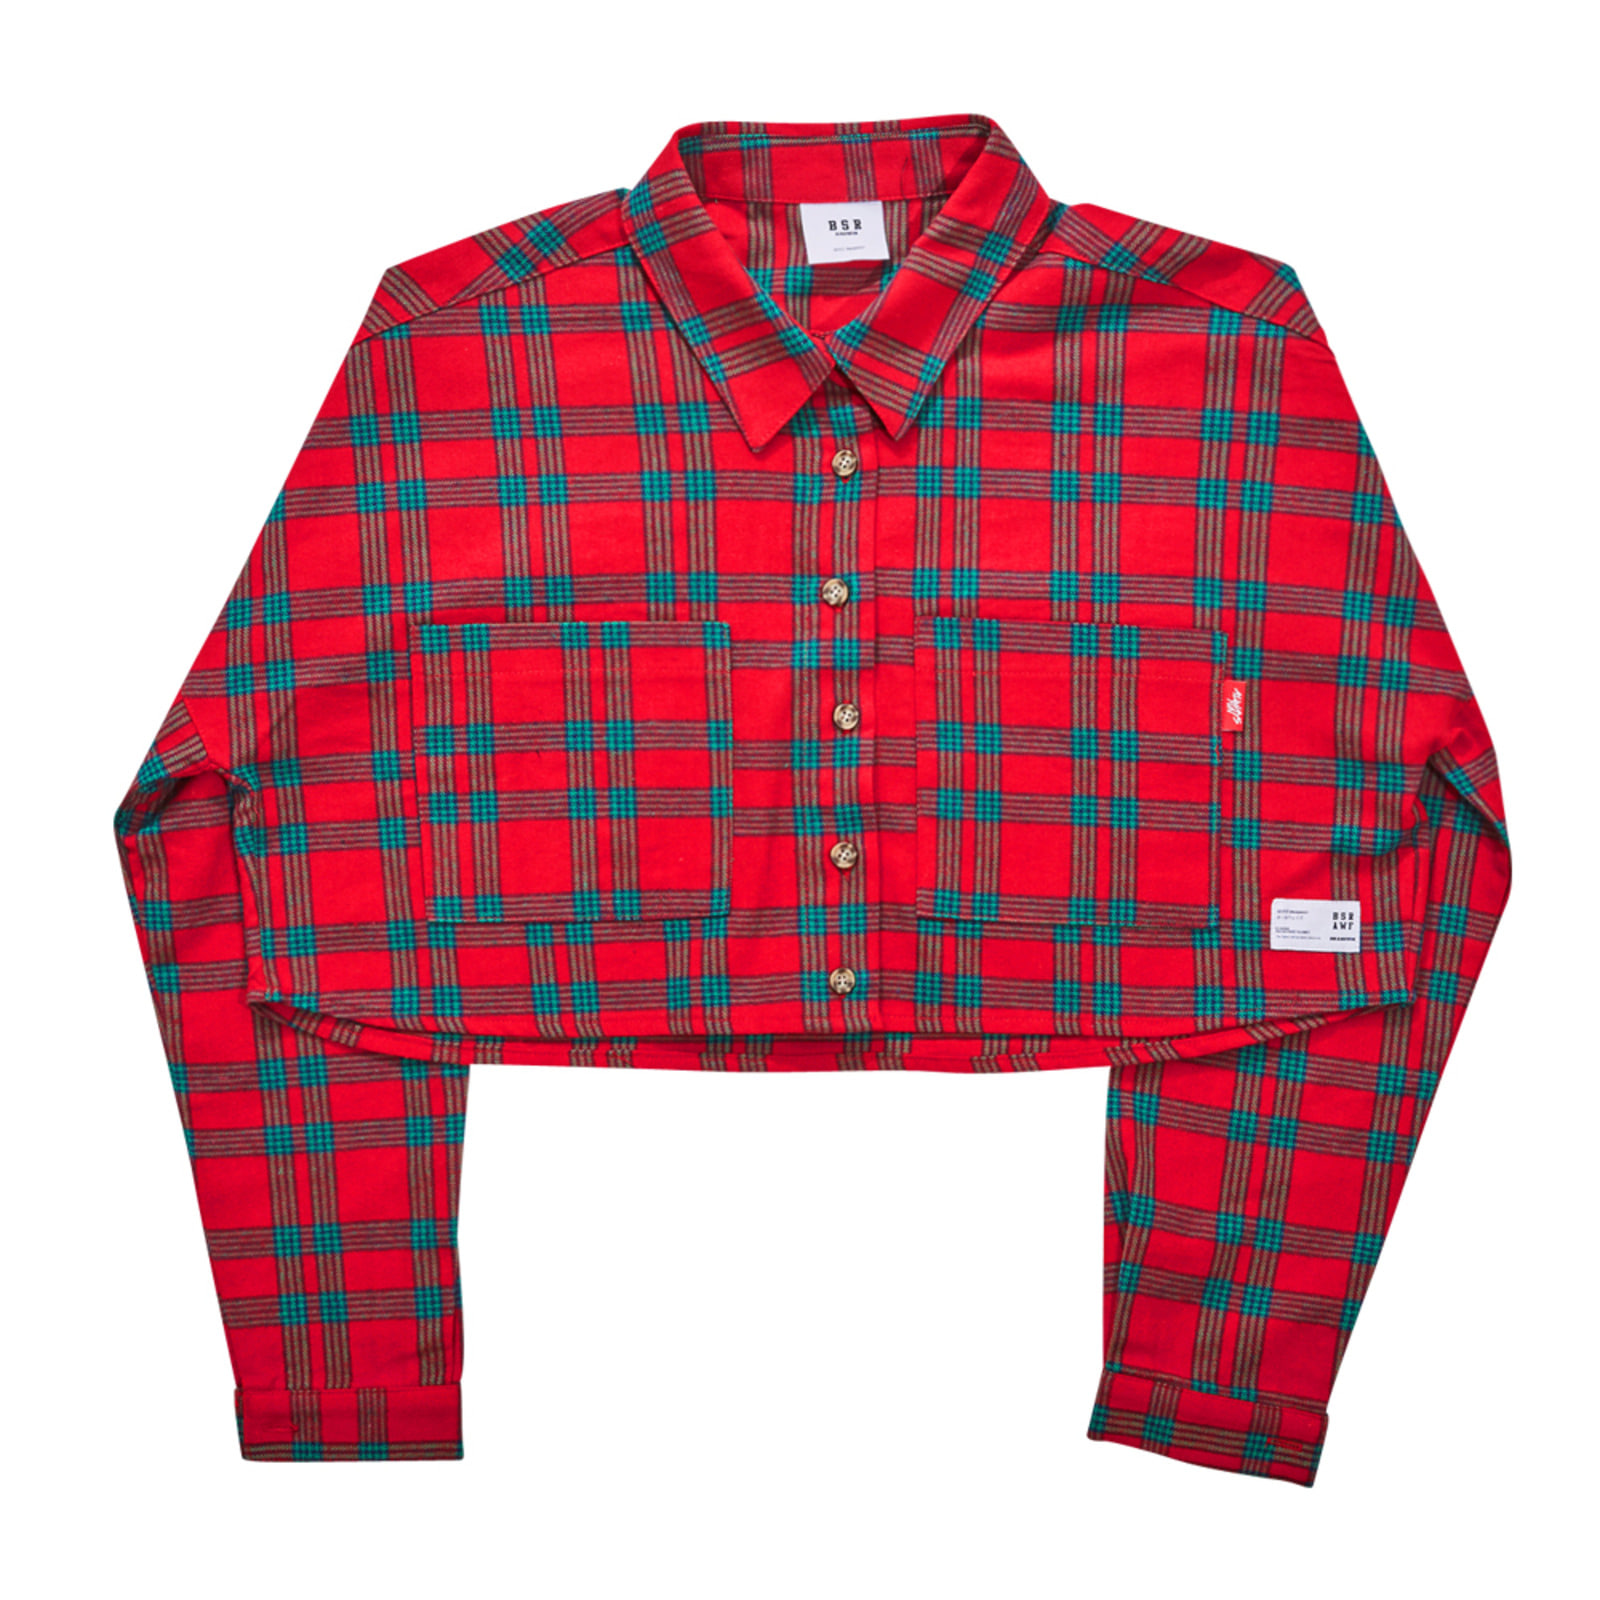 BSRAWF CHECK CROP SHIRT RED